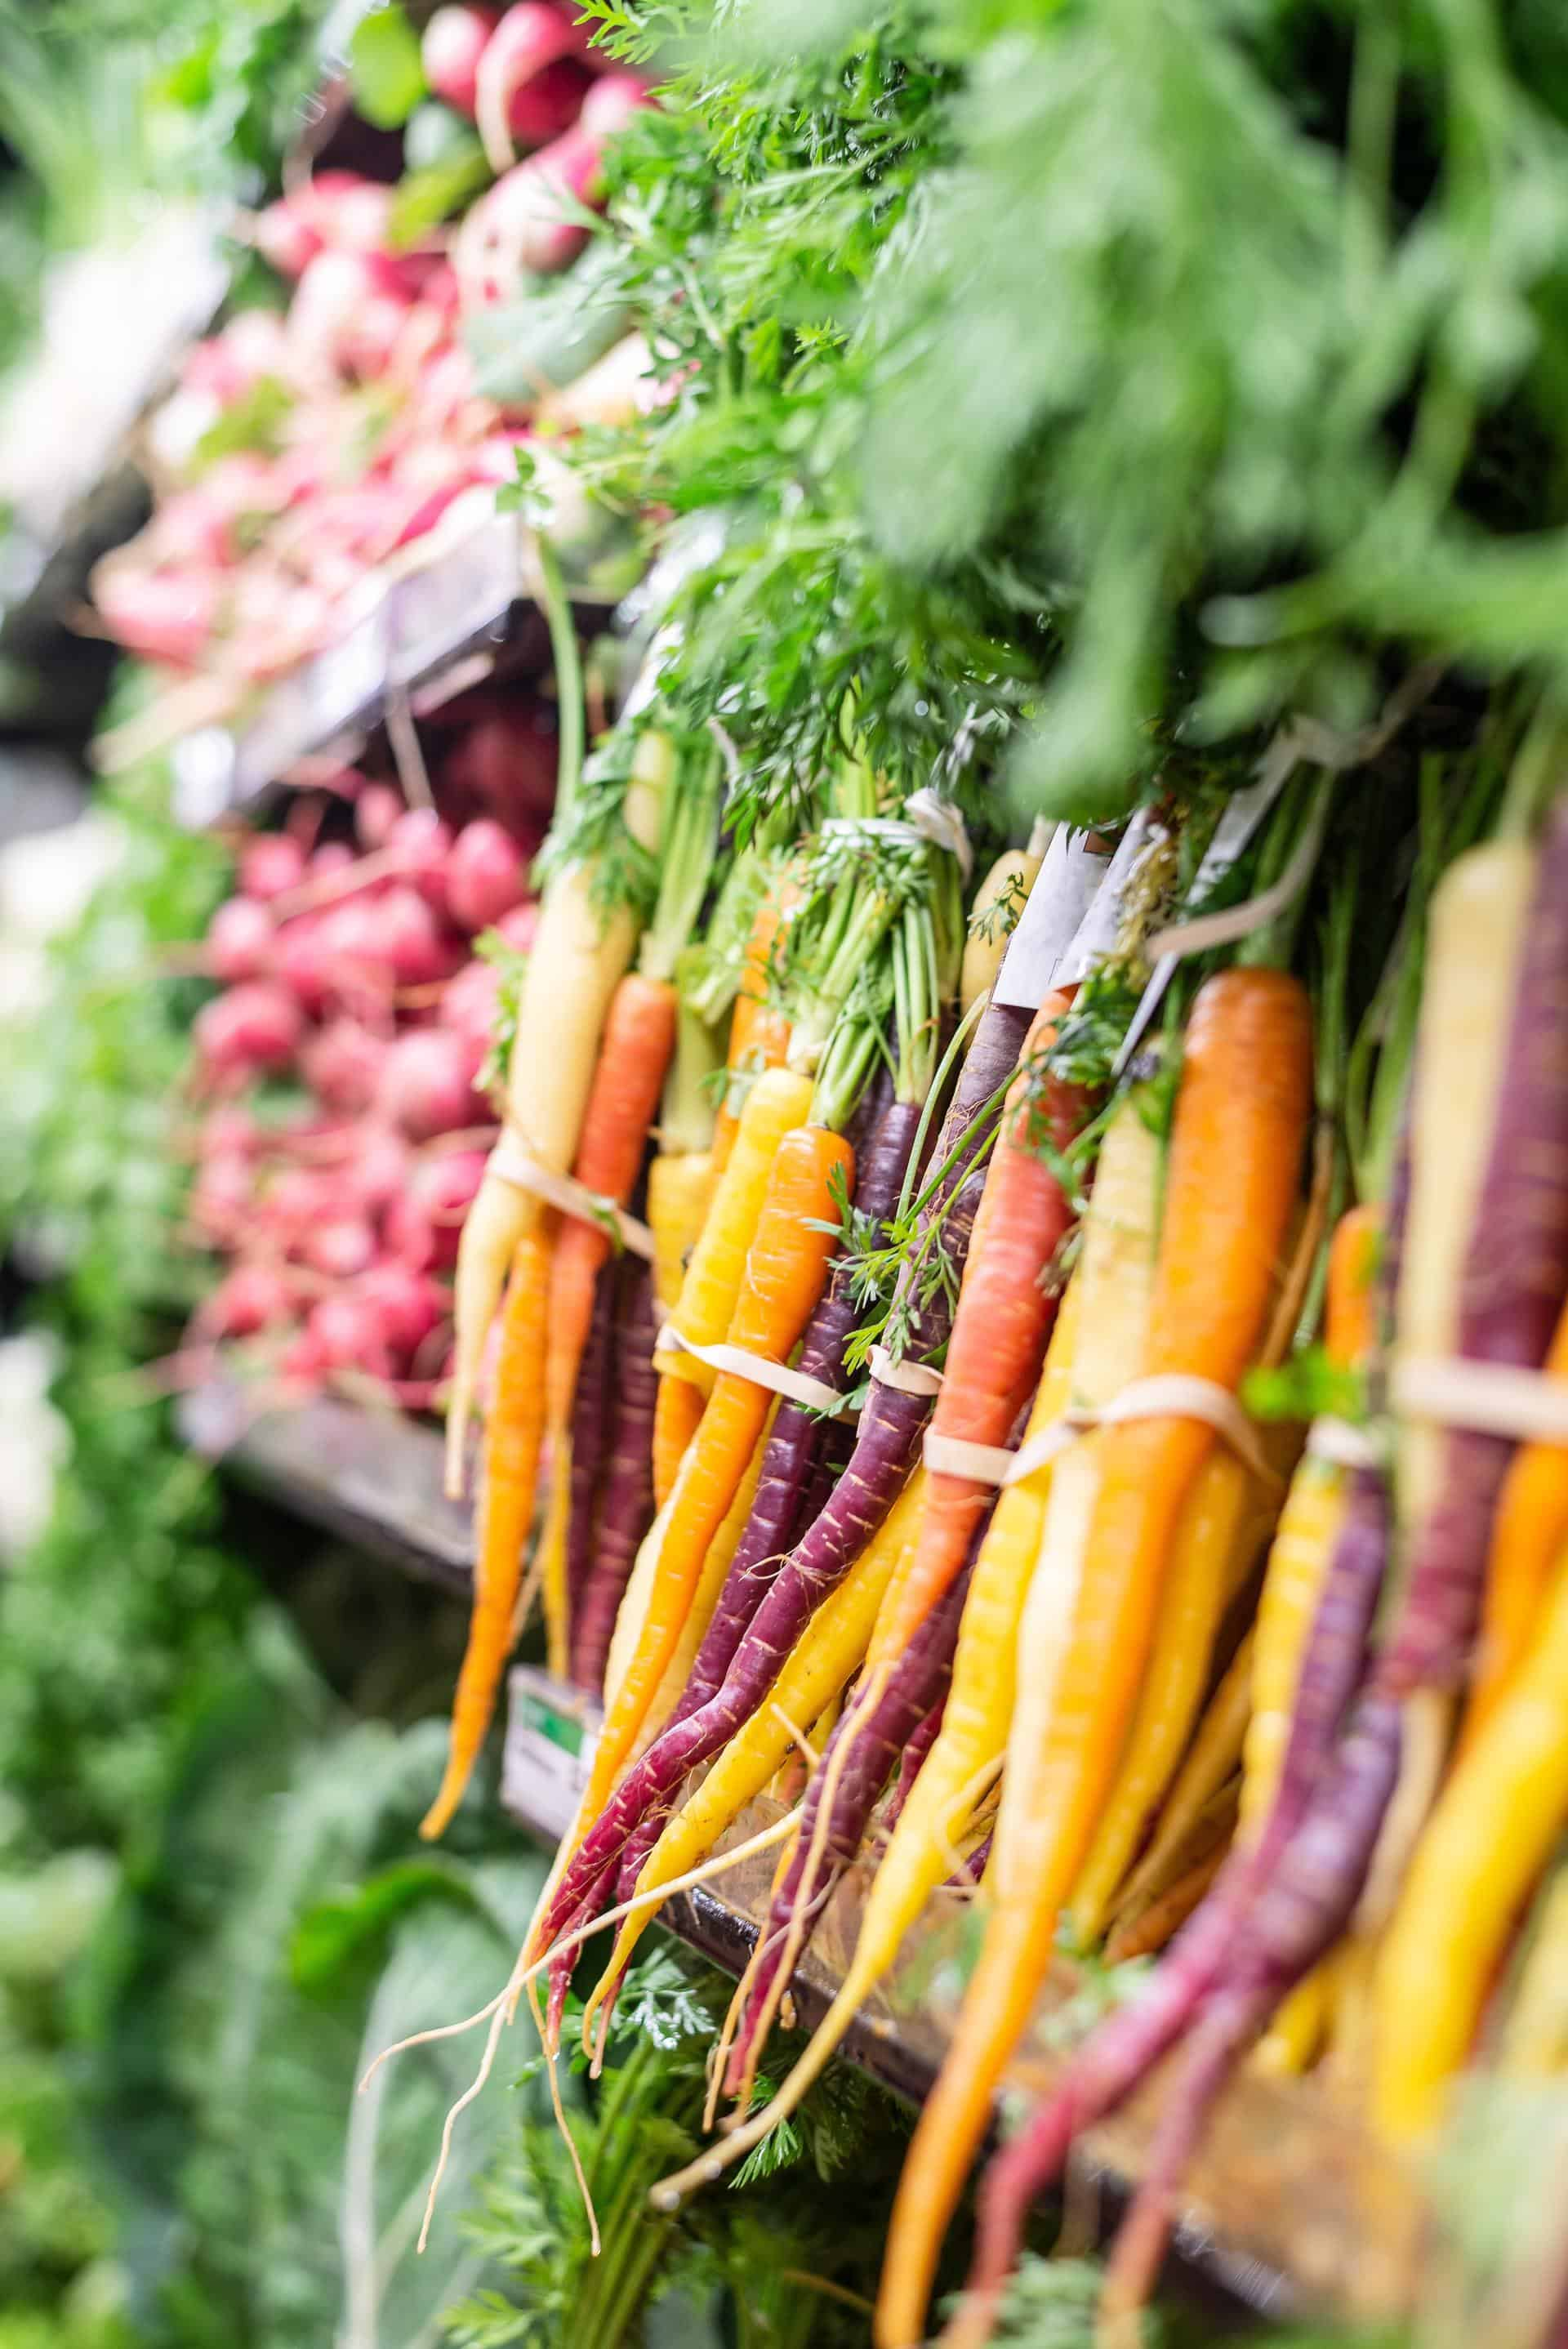 Vegetables for picky eaters